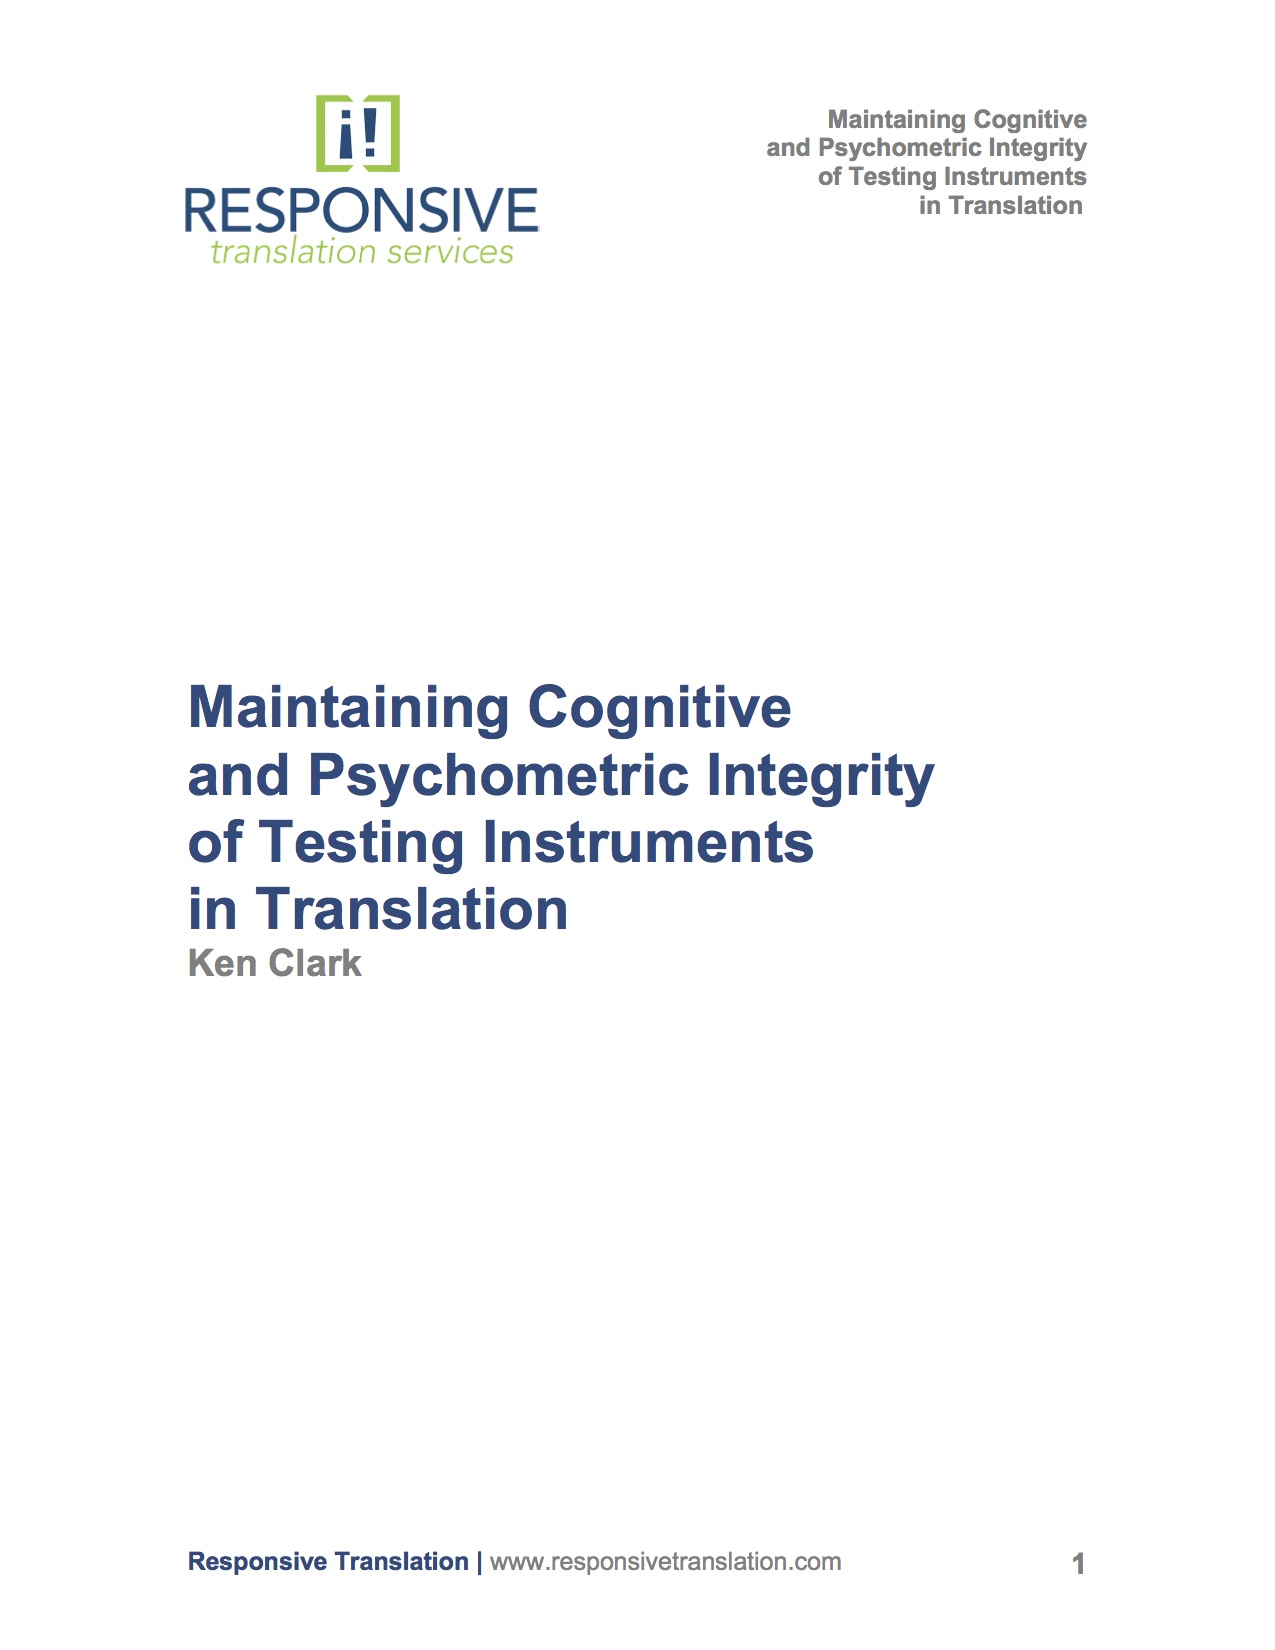 Maintaining-Cognitive-and-Psychometric-Integrity-of-Testing-Instruments-in-Translation-White-Paper